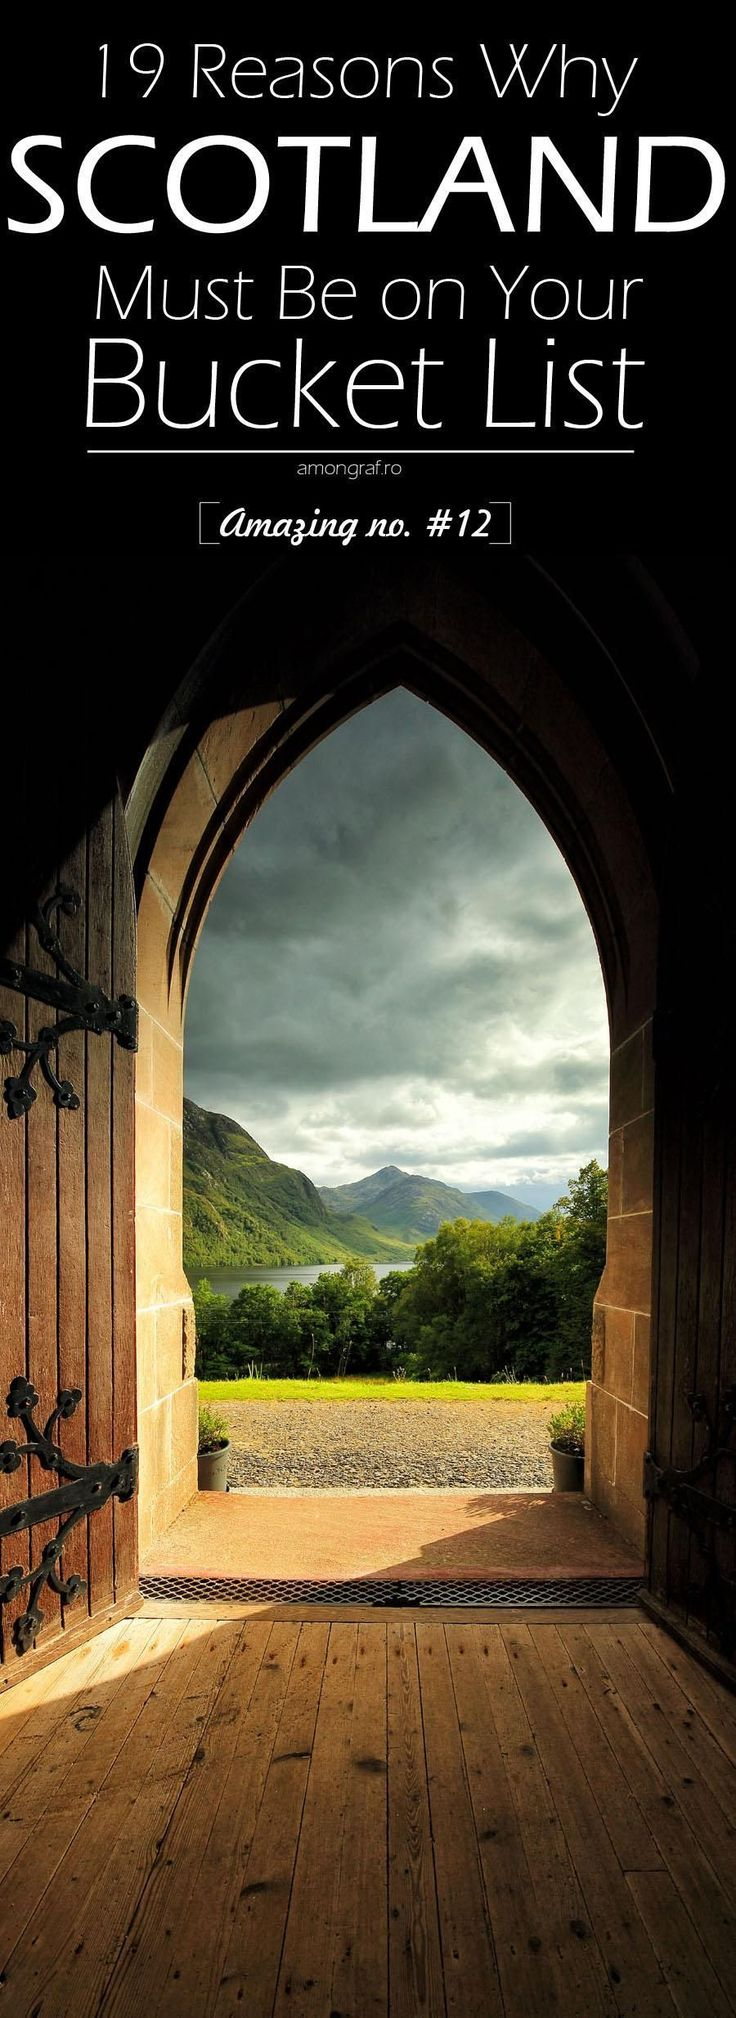 19 Reasons Why Scotland Must Be on Your Bucket List. Amazing no. #12 #Scotland.